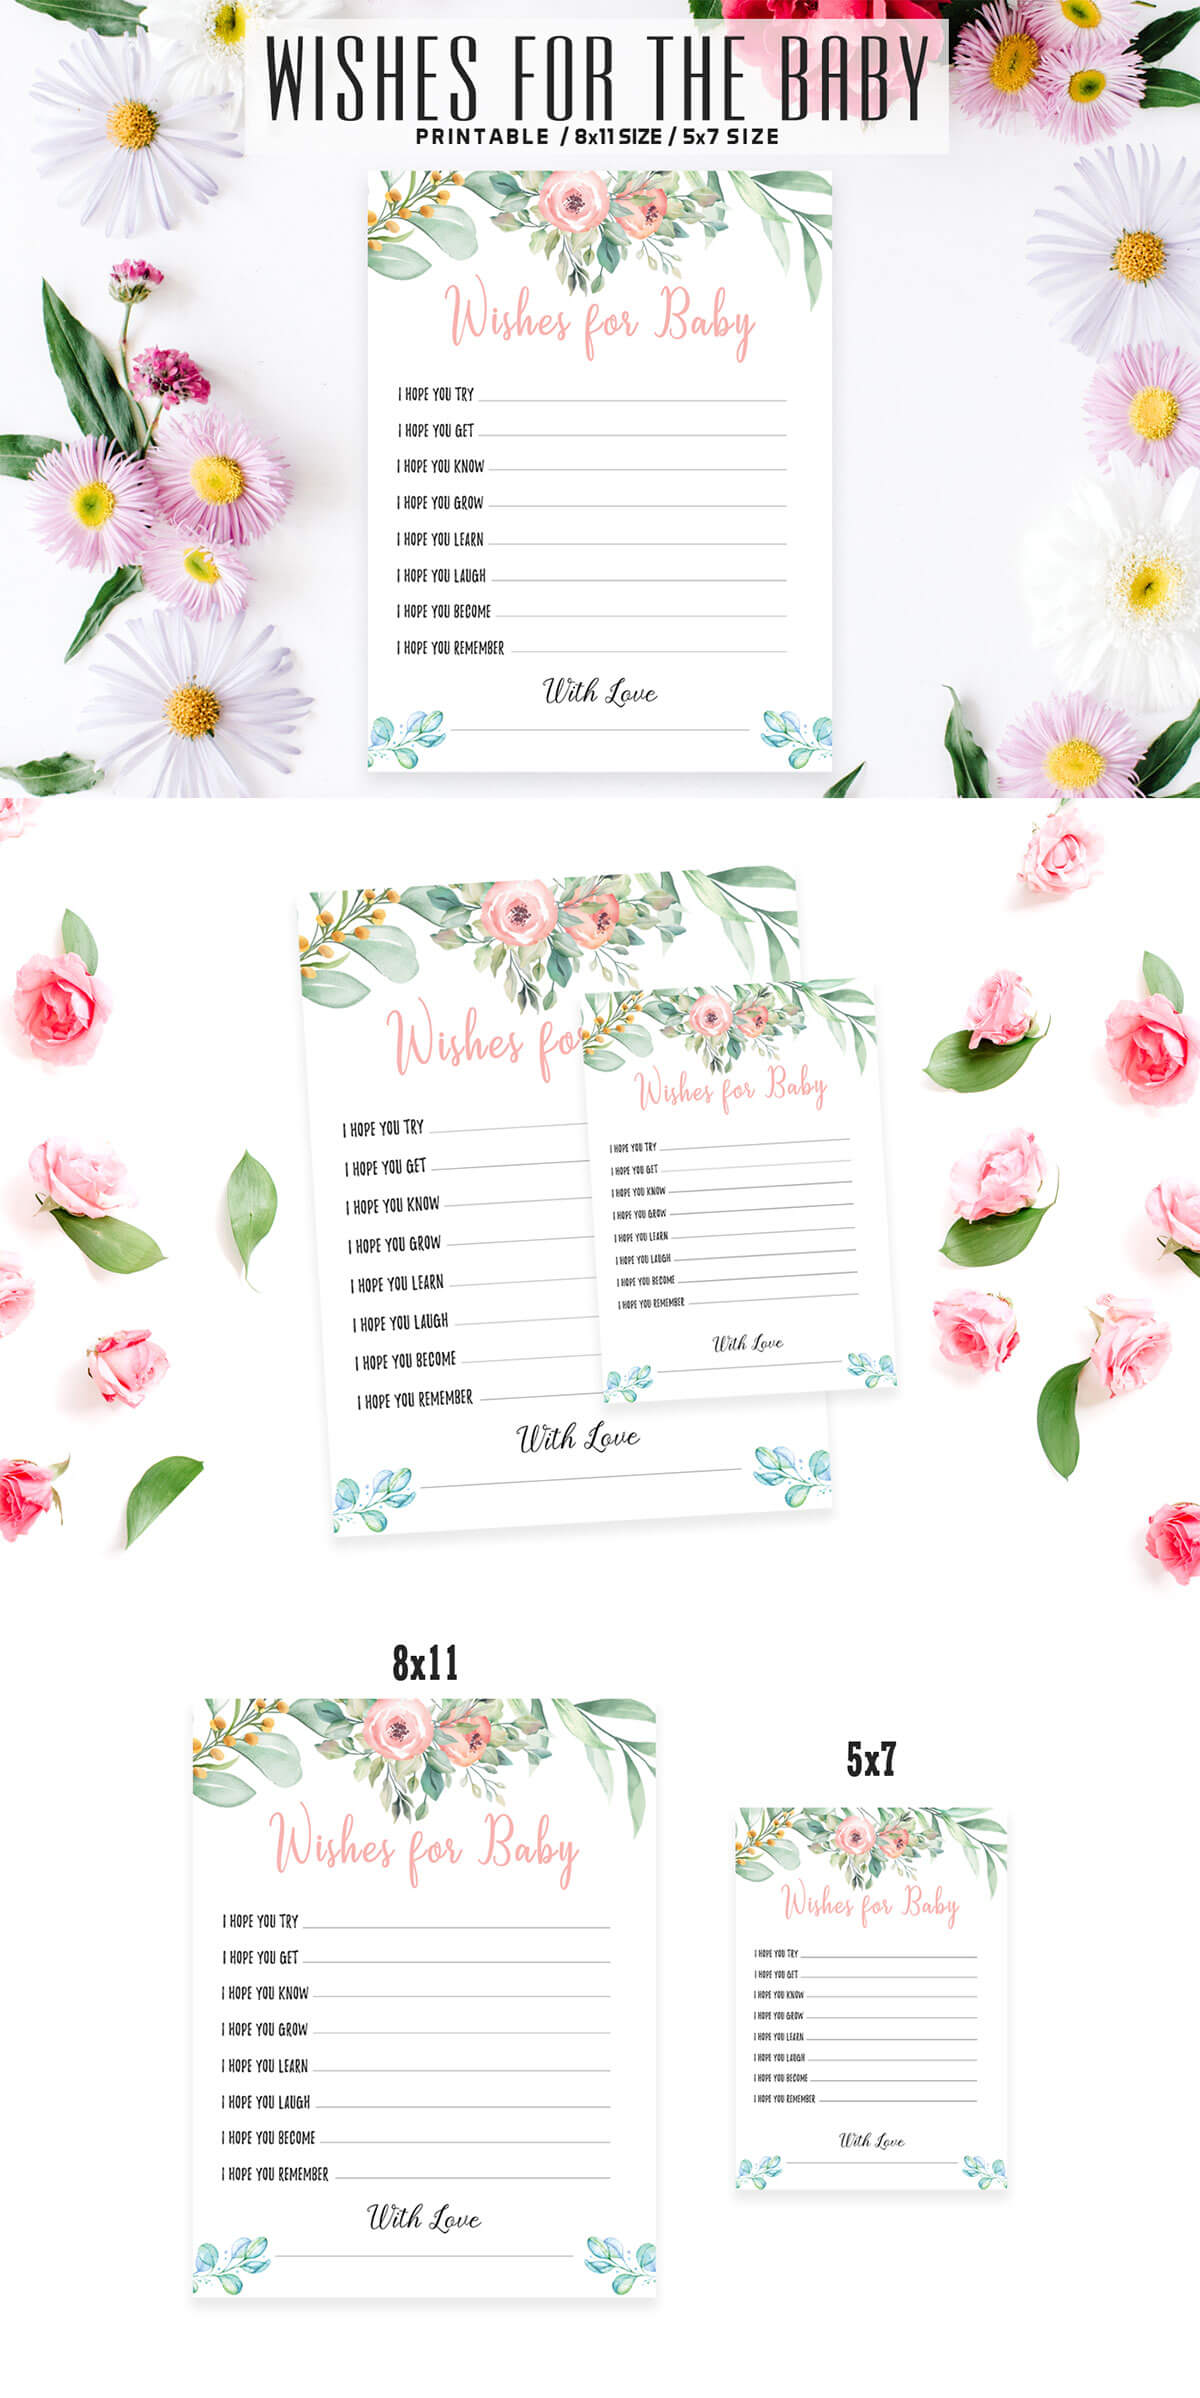 Free Floral Wishes For The Baby Printable V2